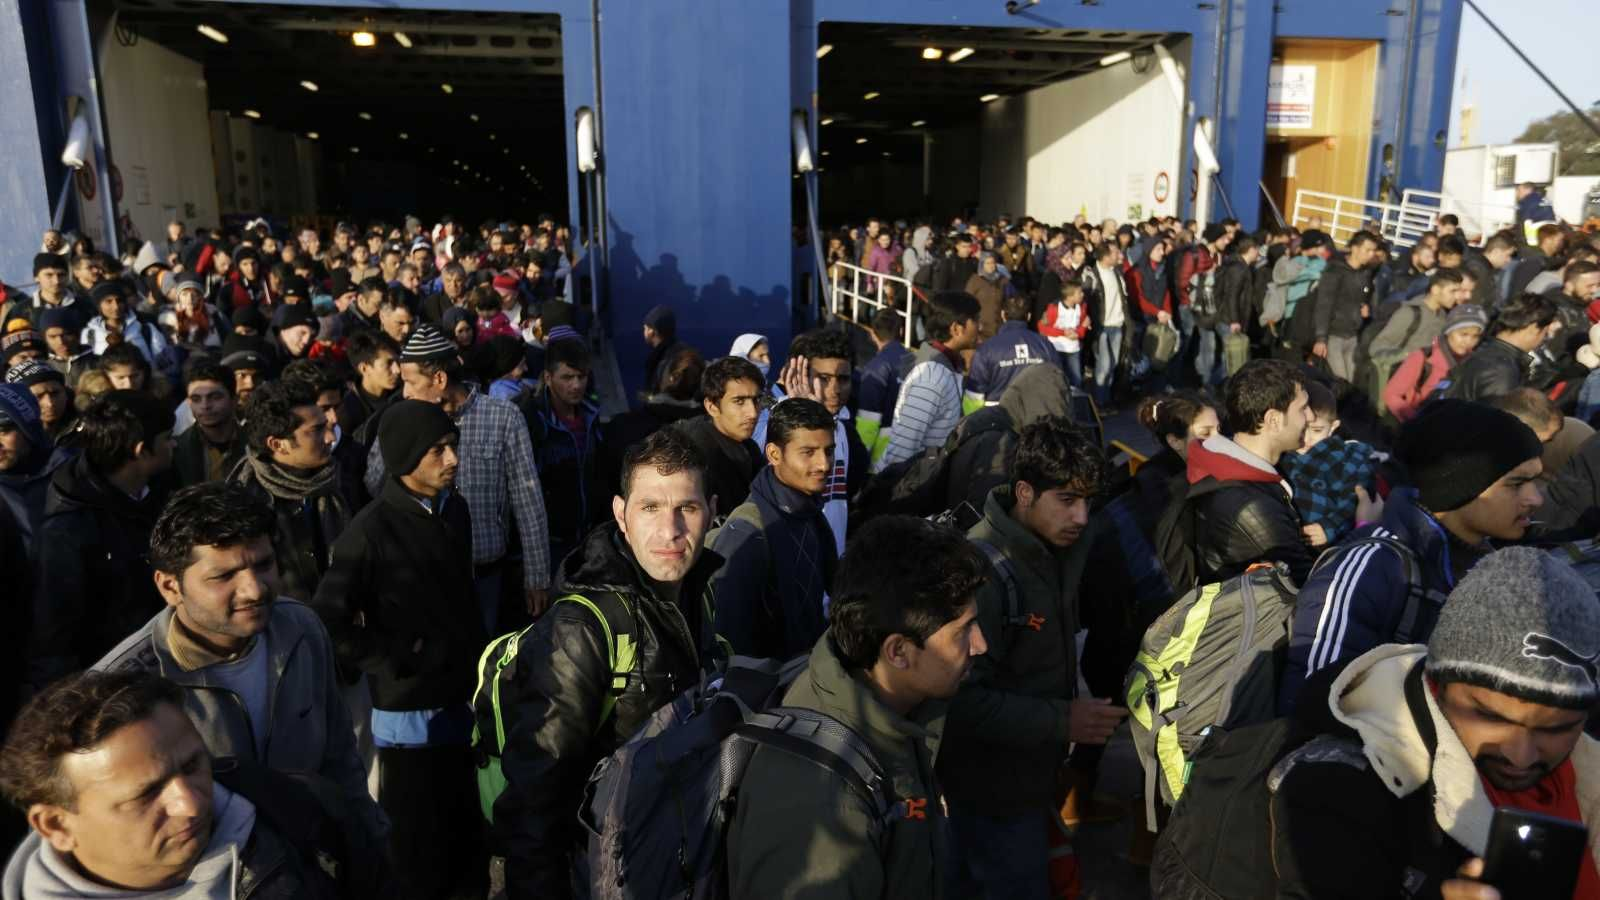 More than 110,000 Muslim refugees have entered Europe since January, according to the latest estimates. The vast majority of refugees entered through the Greek islands.